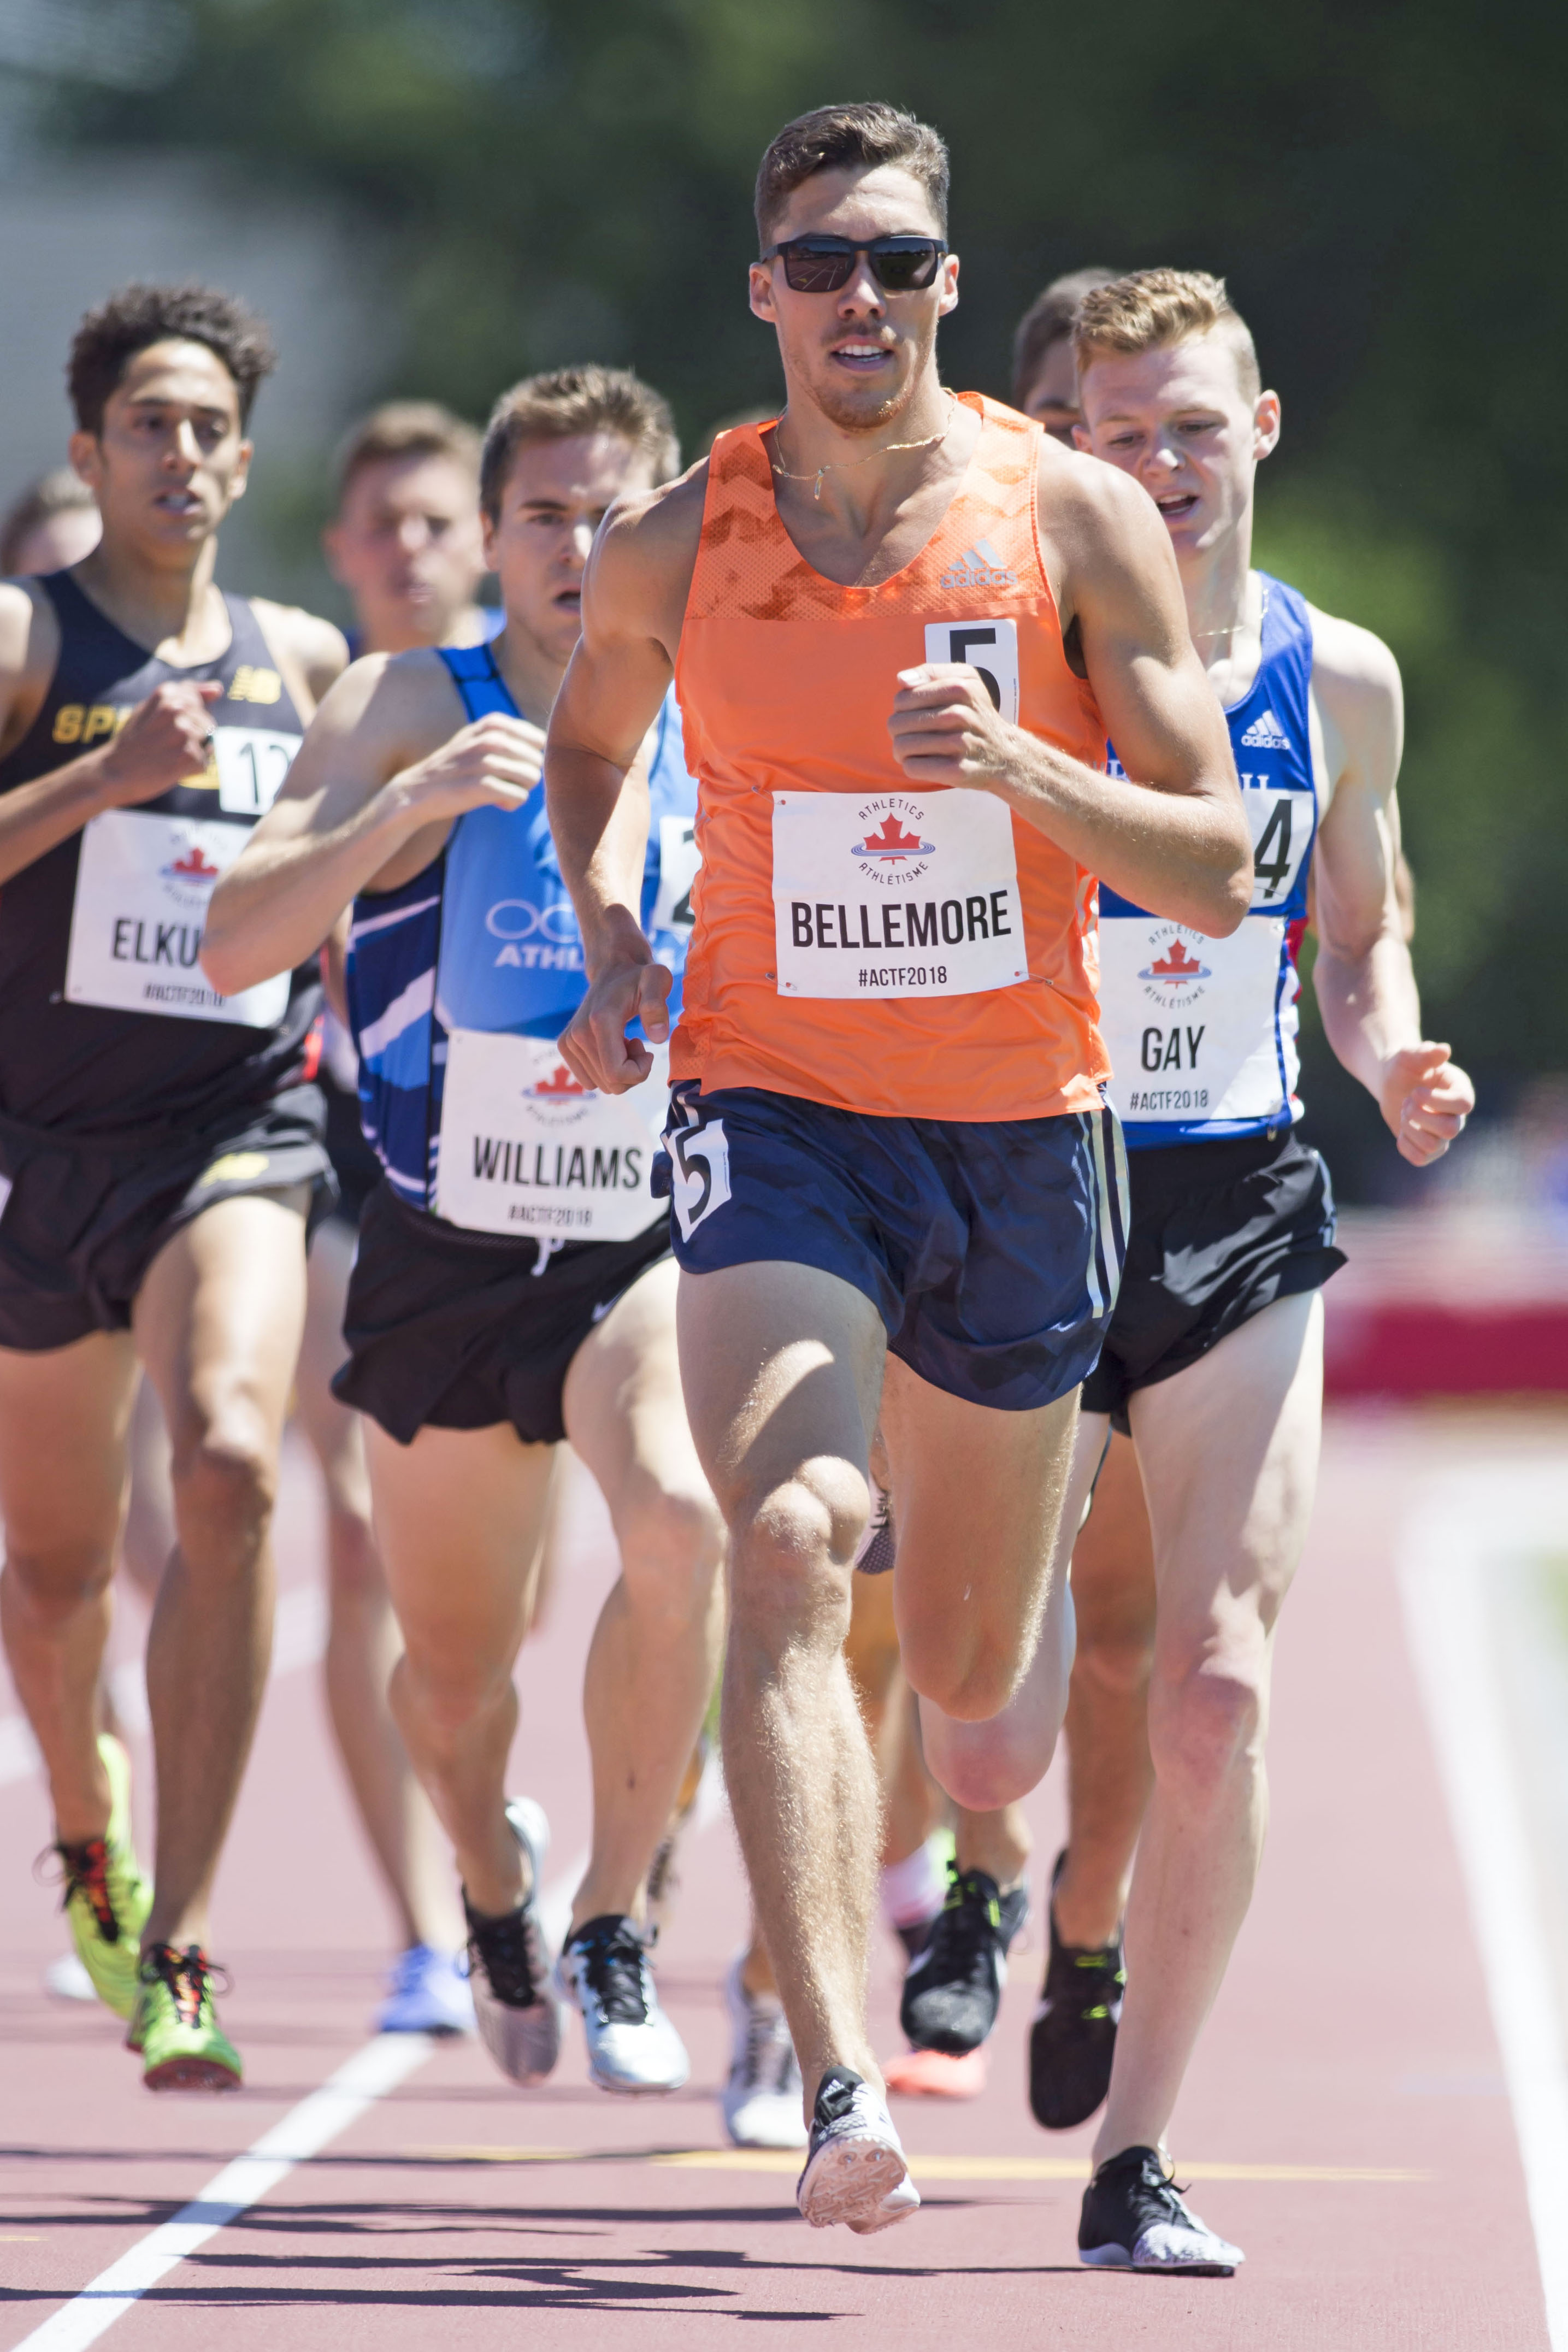 World beer mile record holder Corey Bellemore runs in the 1500m semi-final at the 2018 Athletics Canada National Track and Field Championships on July 07, 2018.